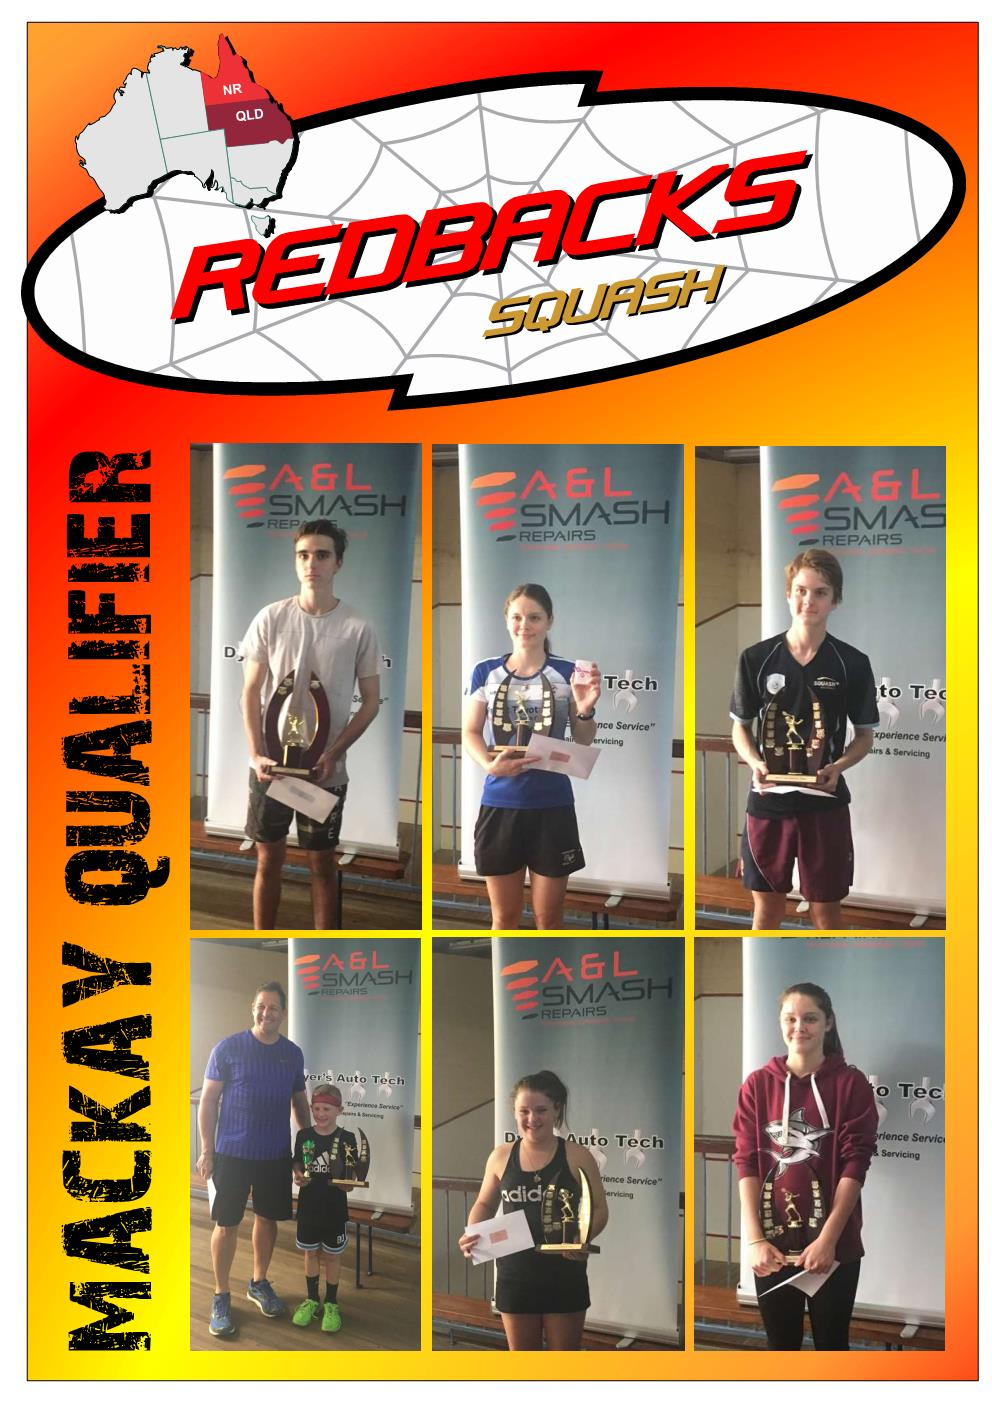 Redbacks Squash Newsletter June 2018